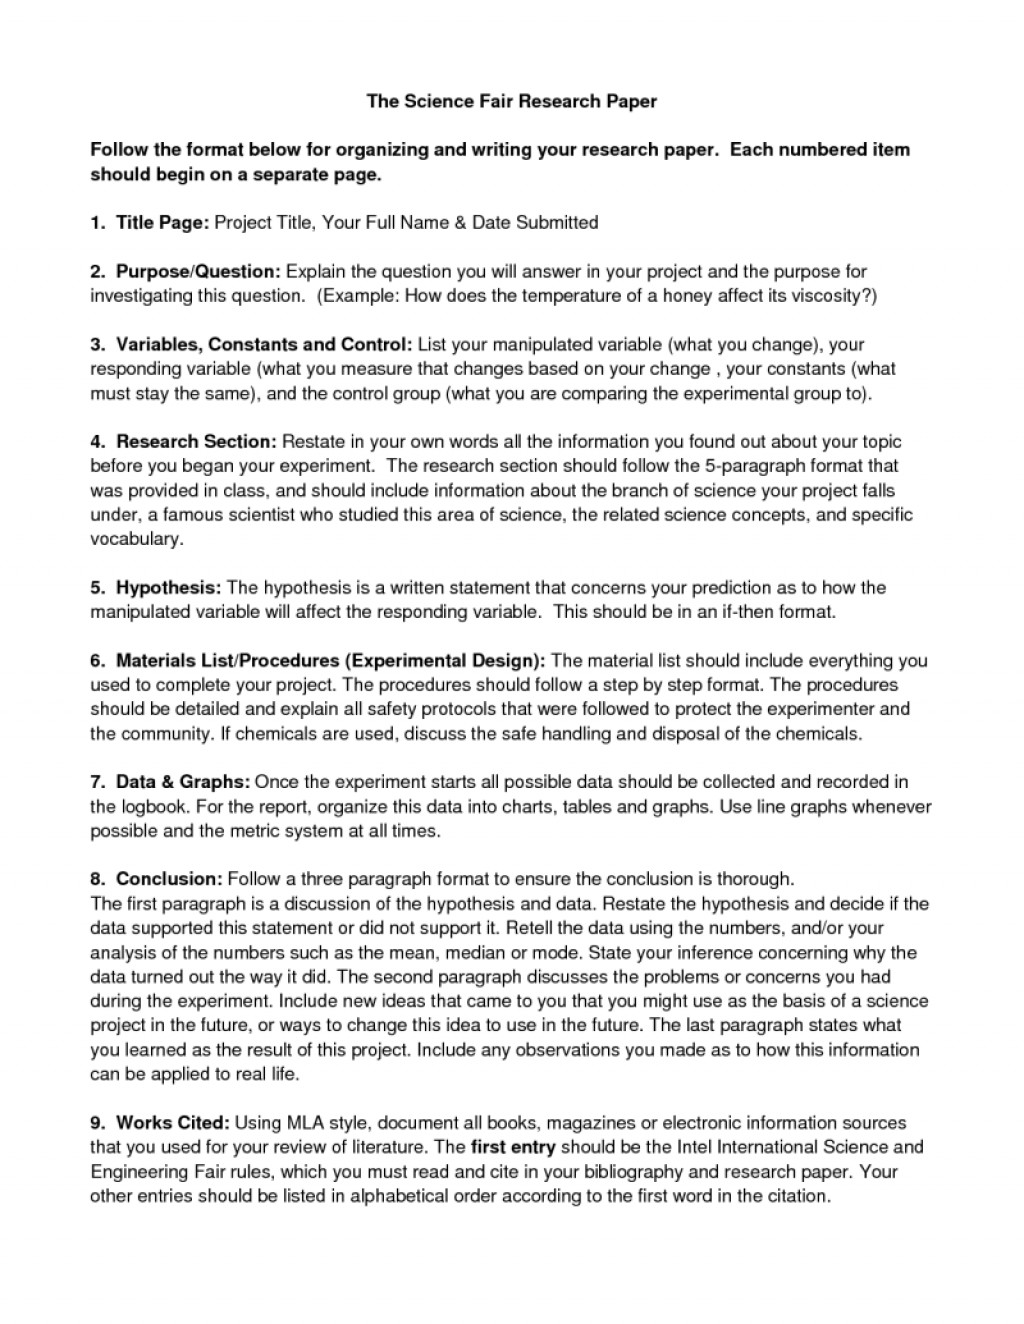 016 Research Paper Health Care Topics Ideas Of Science Fair Outline Unique Political Guidelines Fearsome Reform Policy Universal Large